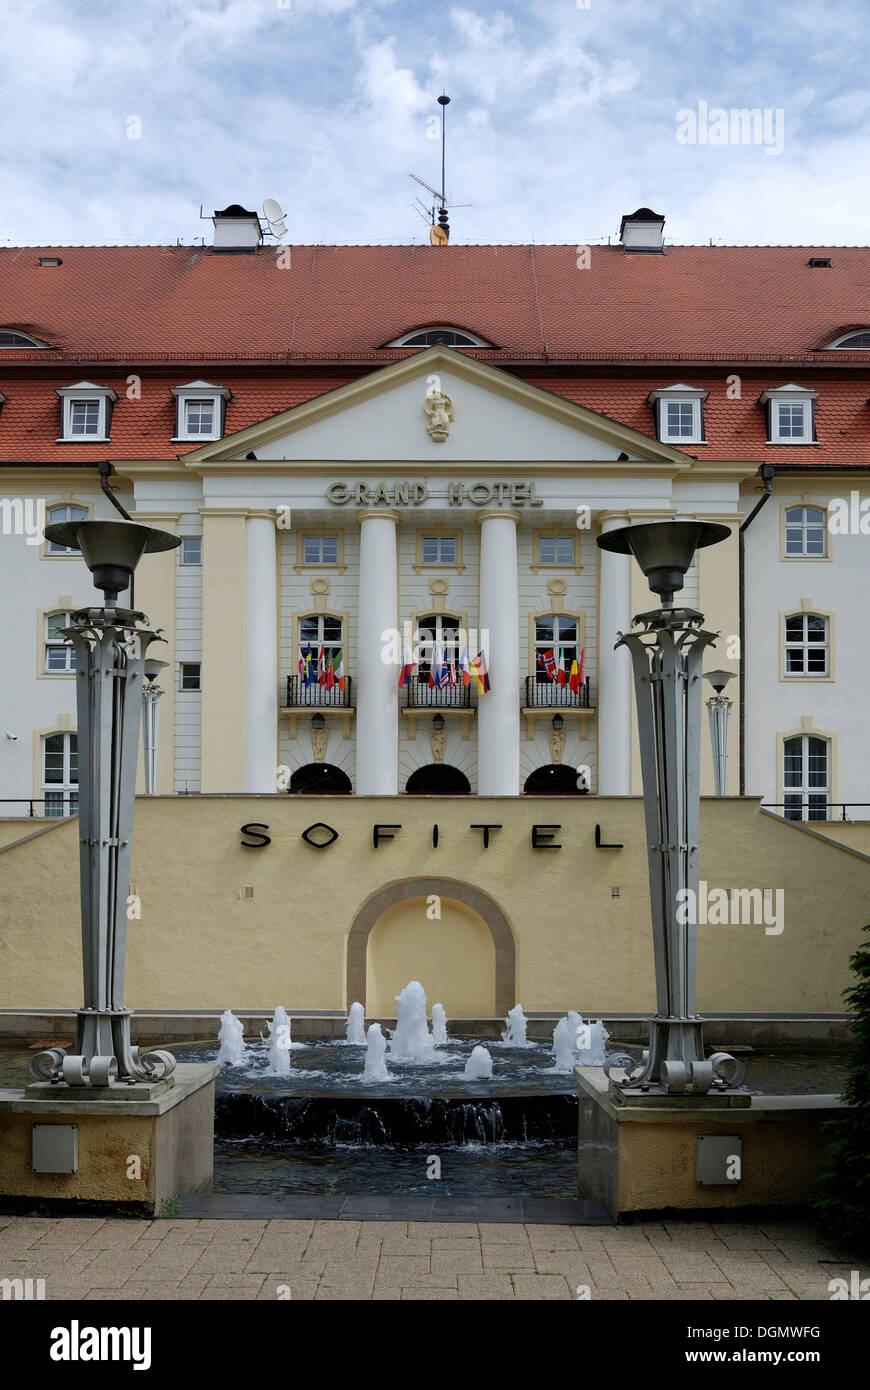 Grand Hotel on the beach of the Baltic resort of Sopot in Poland. - Stock Image